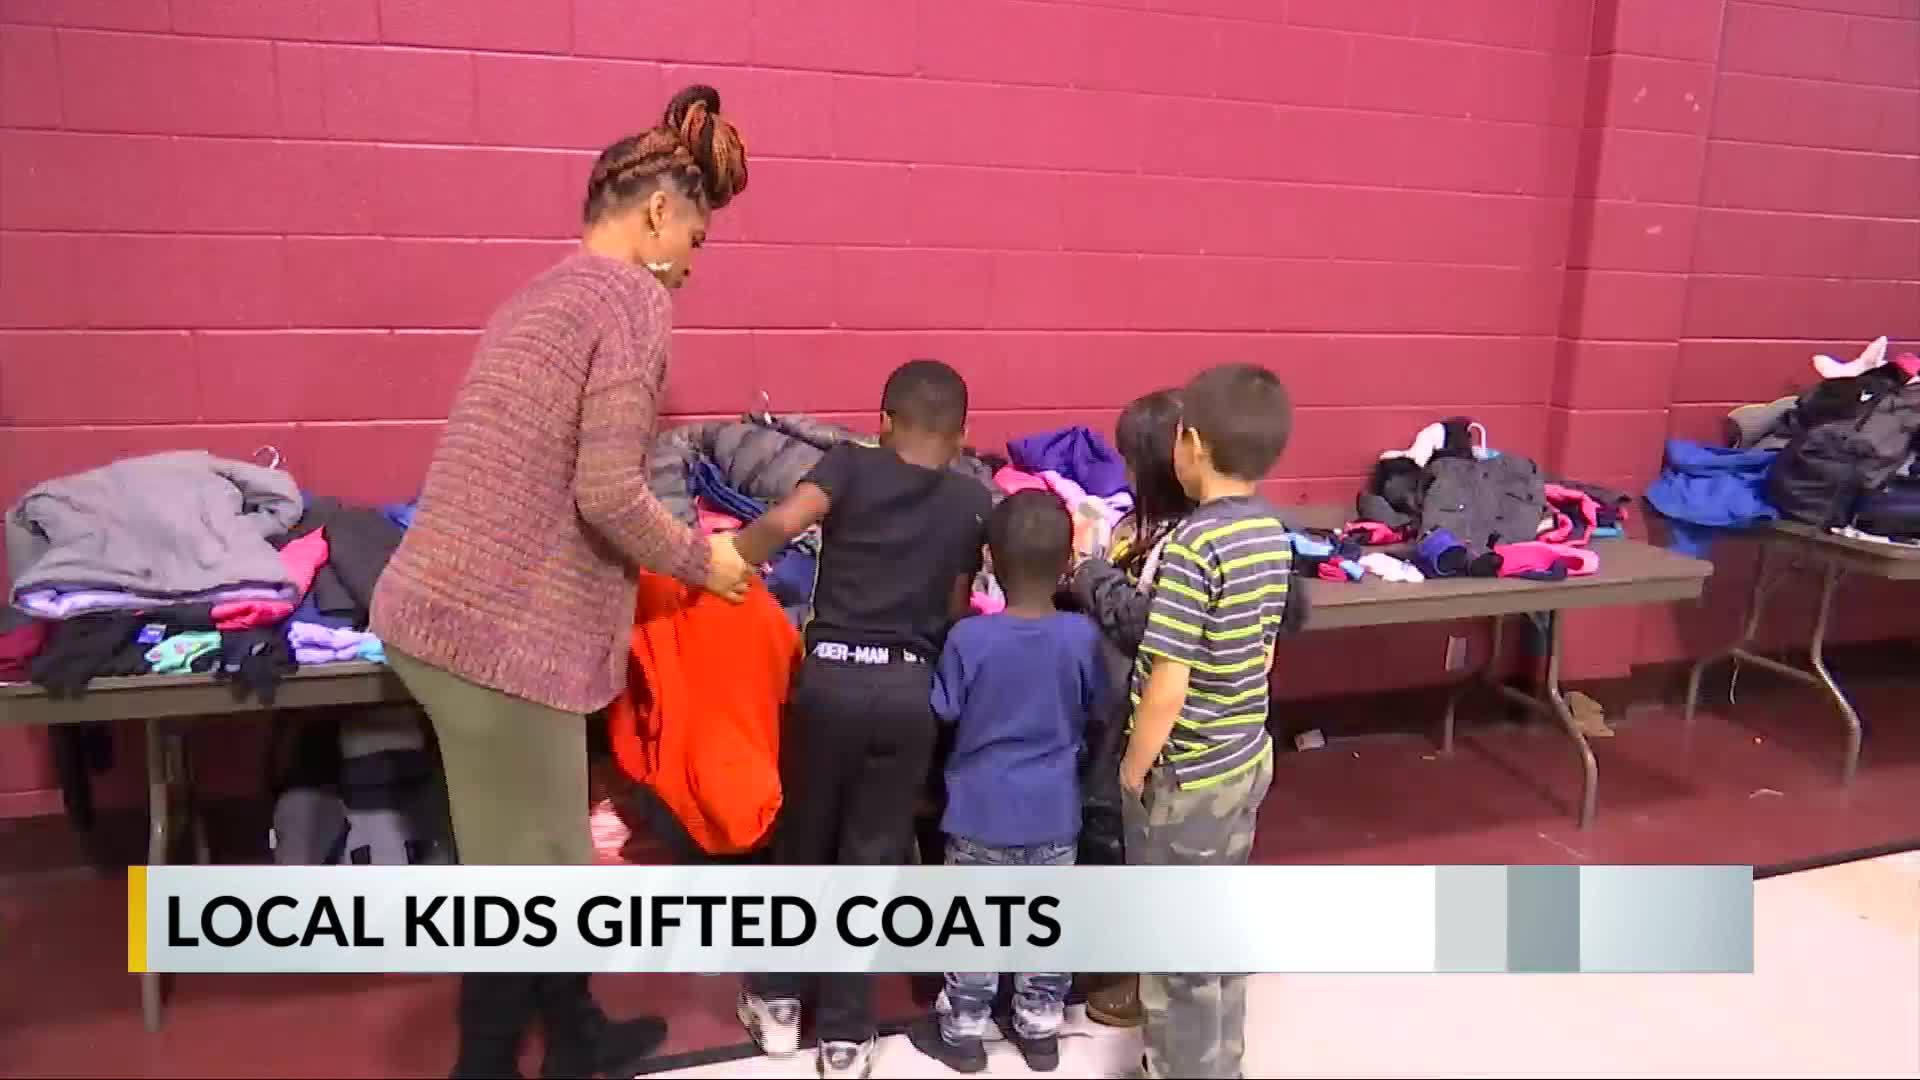 Local After School Program Gifted Coats for Students